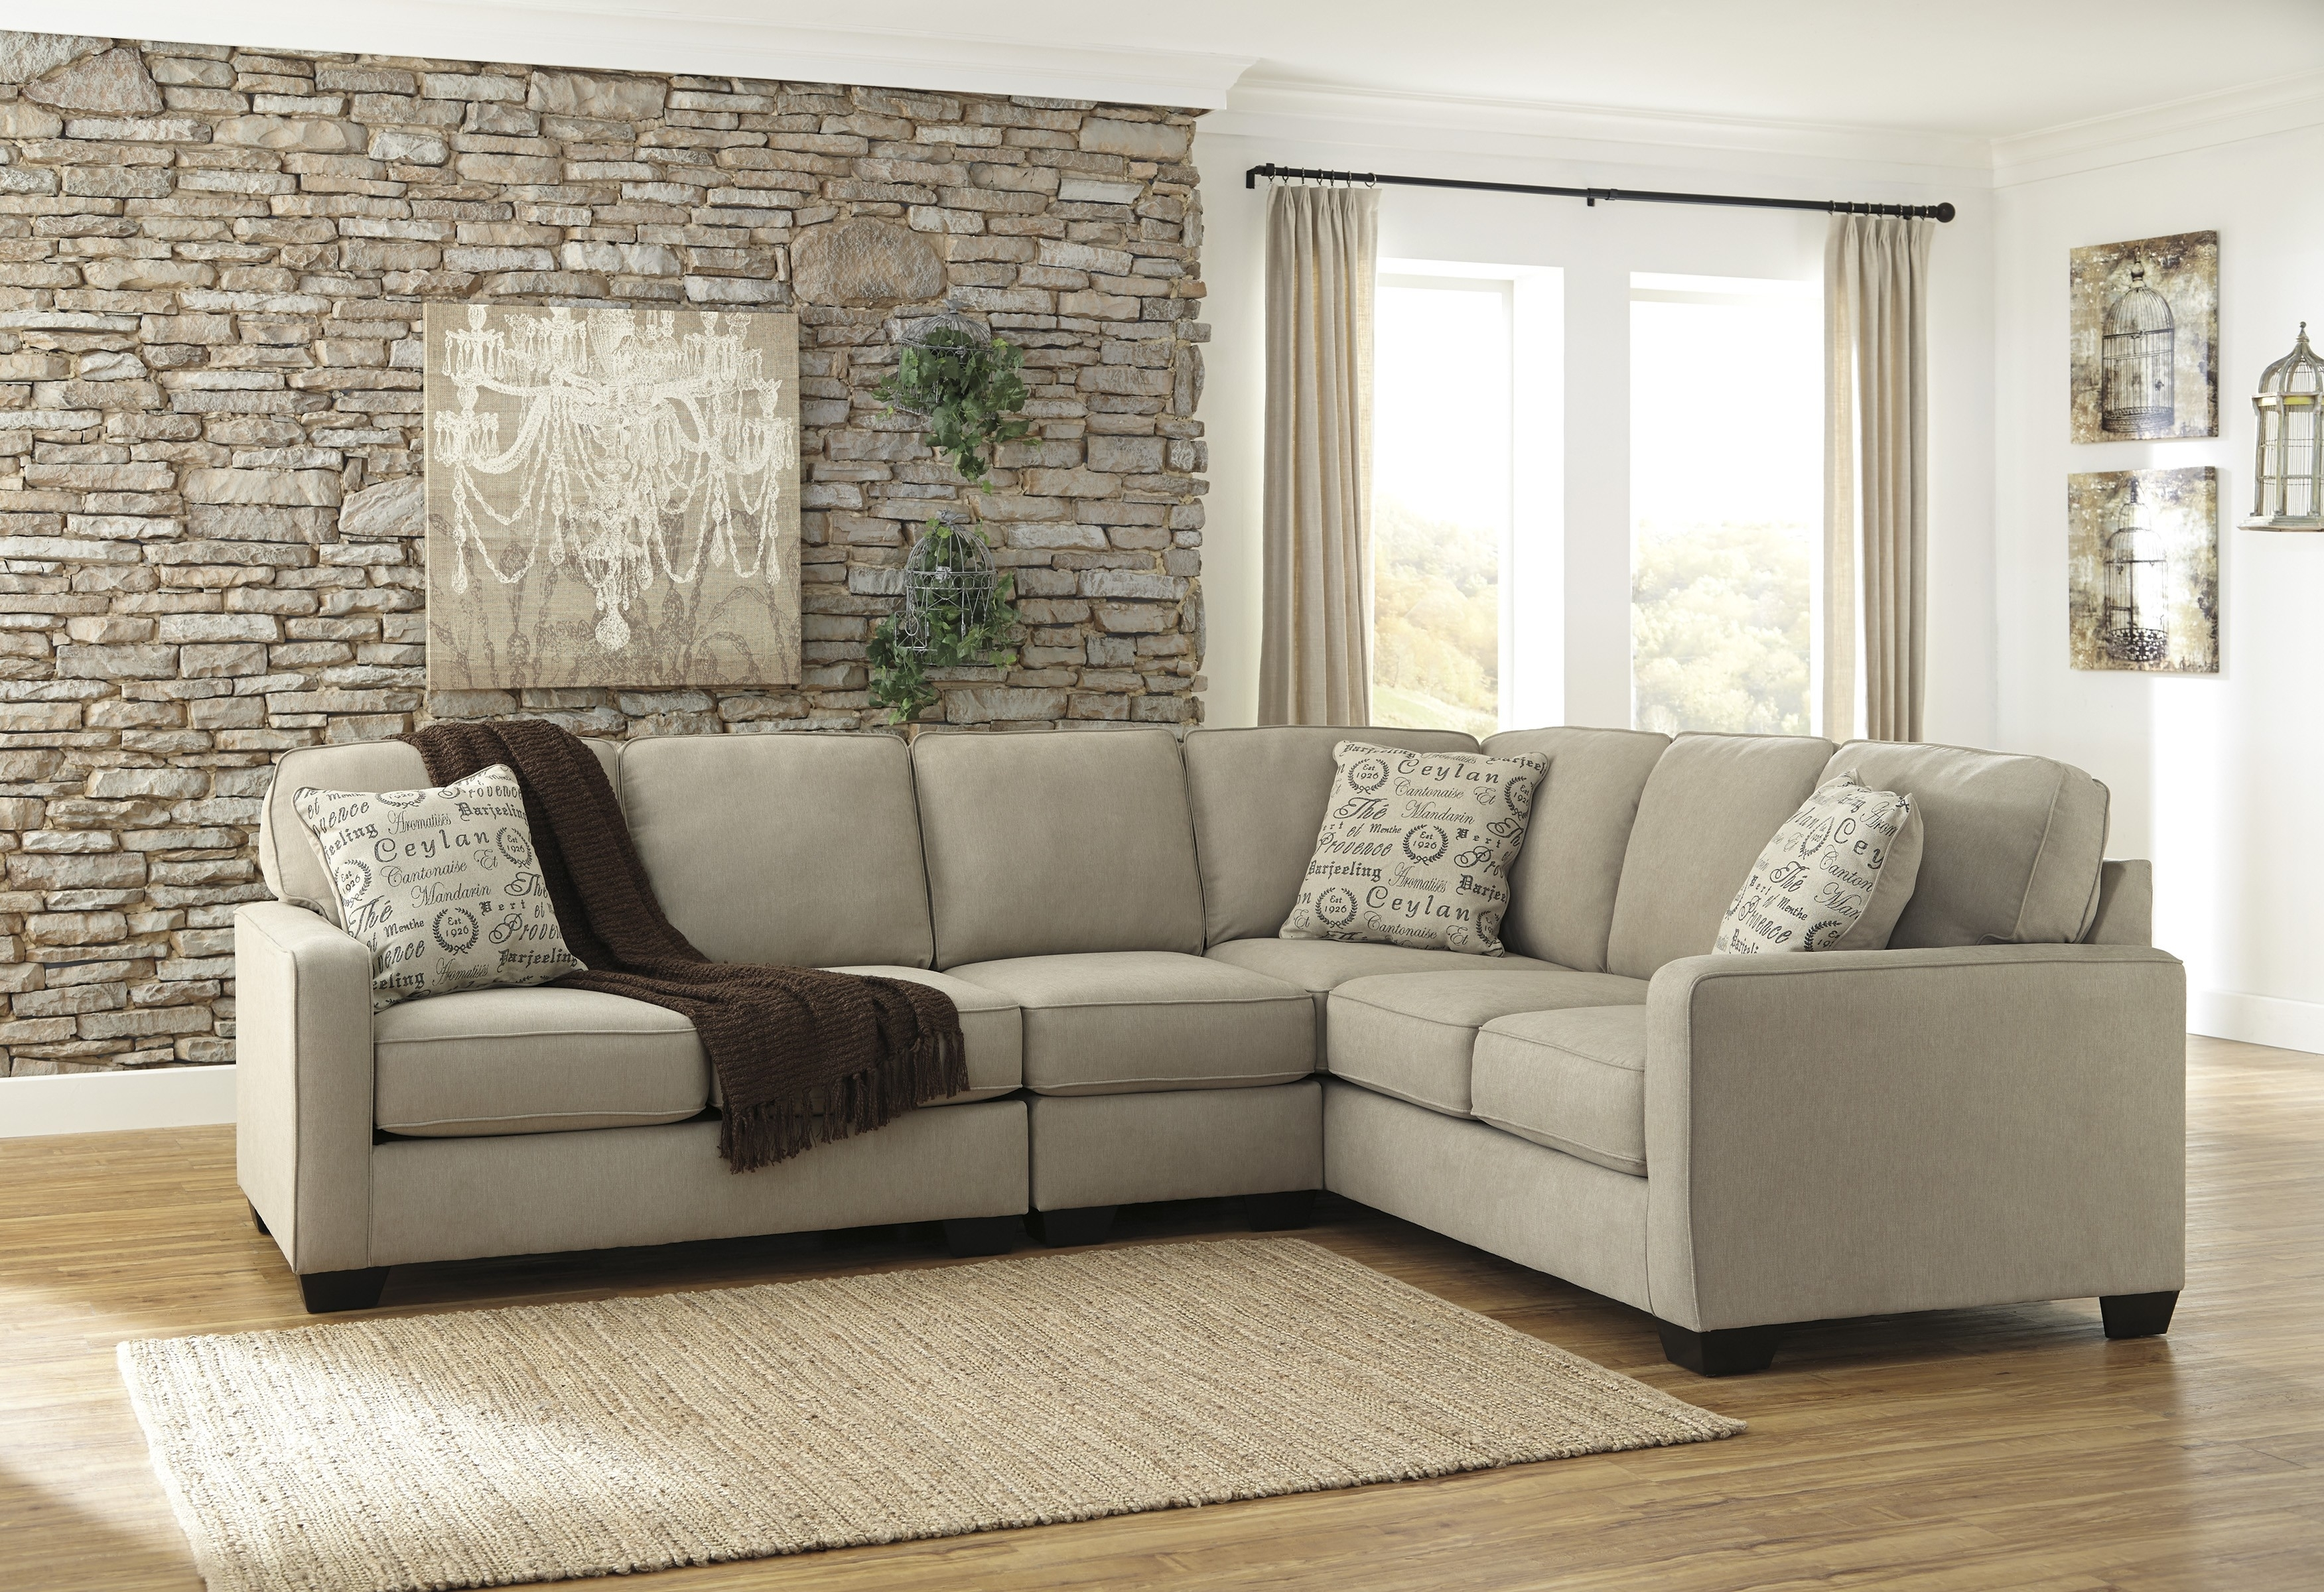 Laf Sofa Raf Loveseat | Baci Living Room For Turdur 2 Piece Sectionals With Raf Loveseat (View 14 of 25)